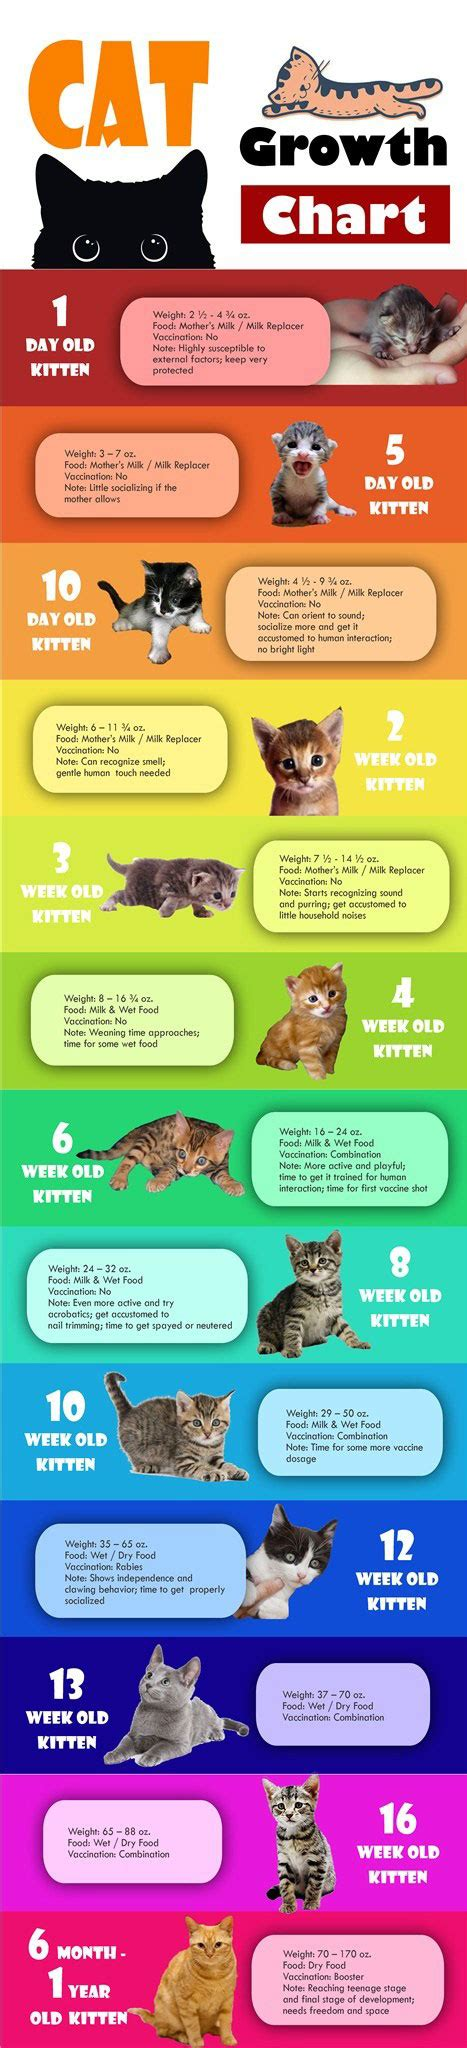 cat growth chart infographic  infographics